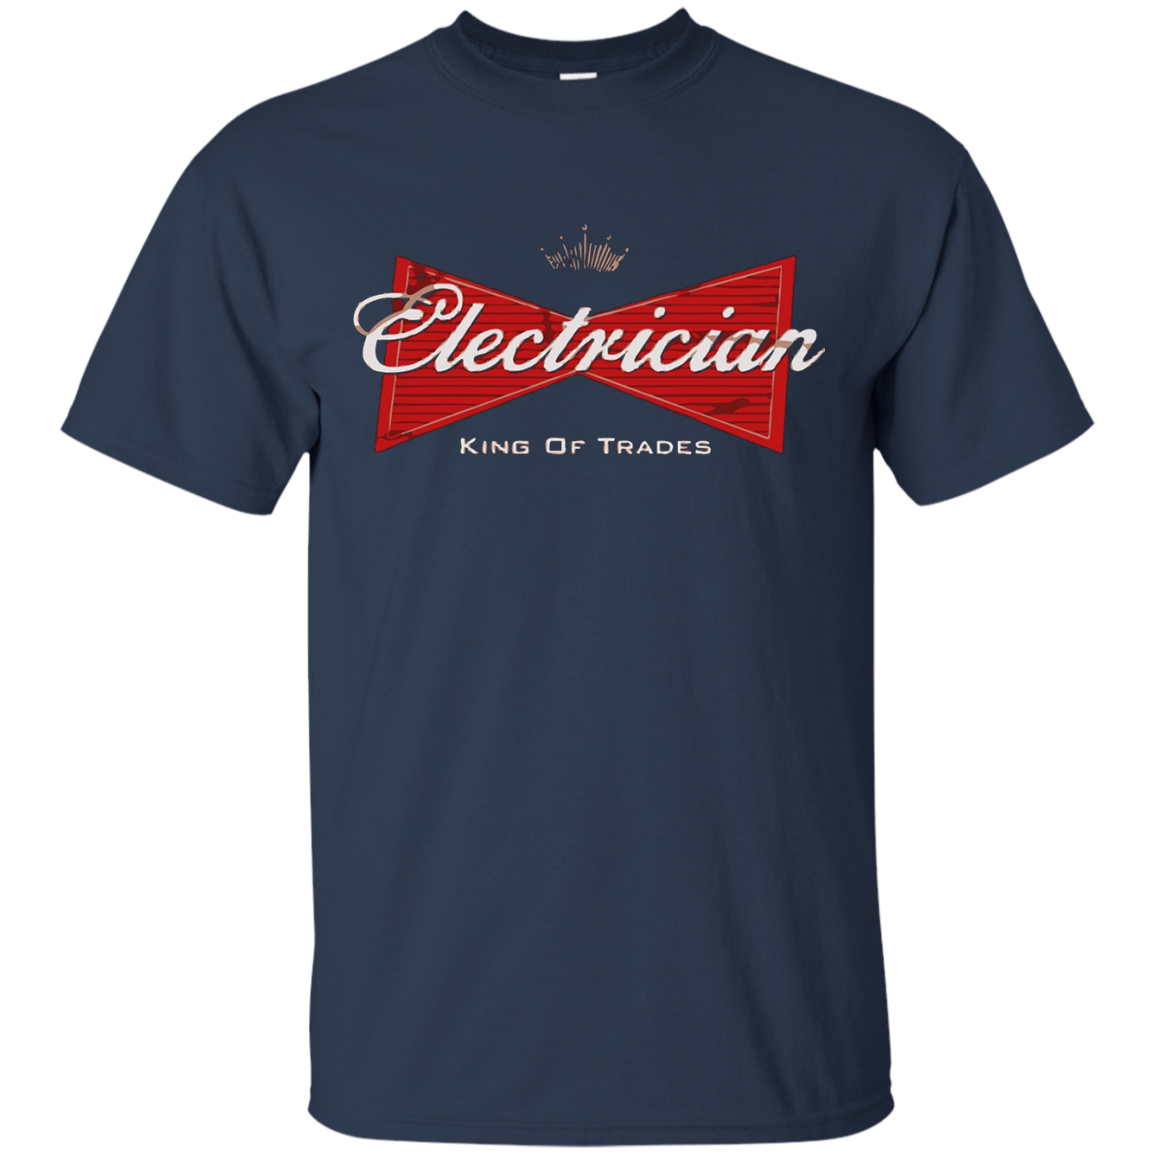 ELECTRICIAN KING OF TRADES T SHIRT - T-Shirt